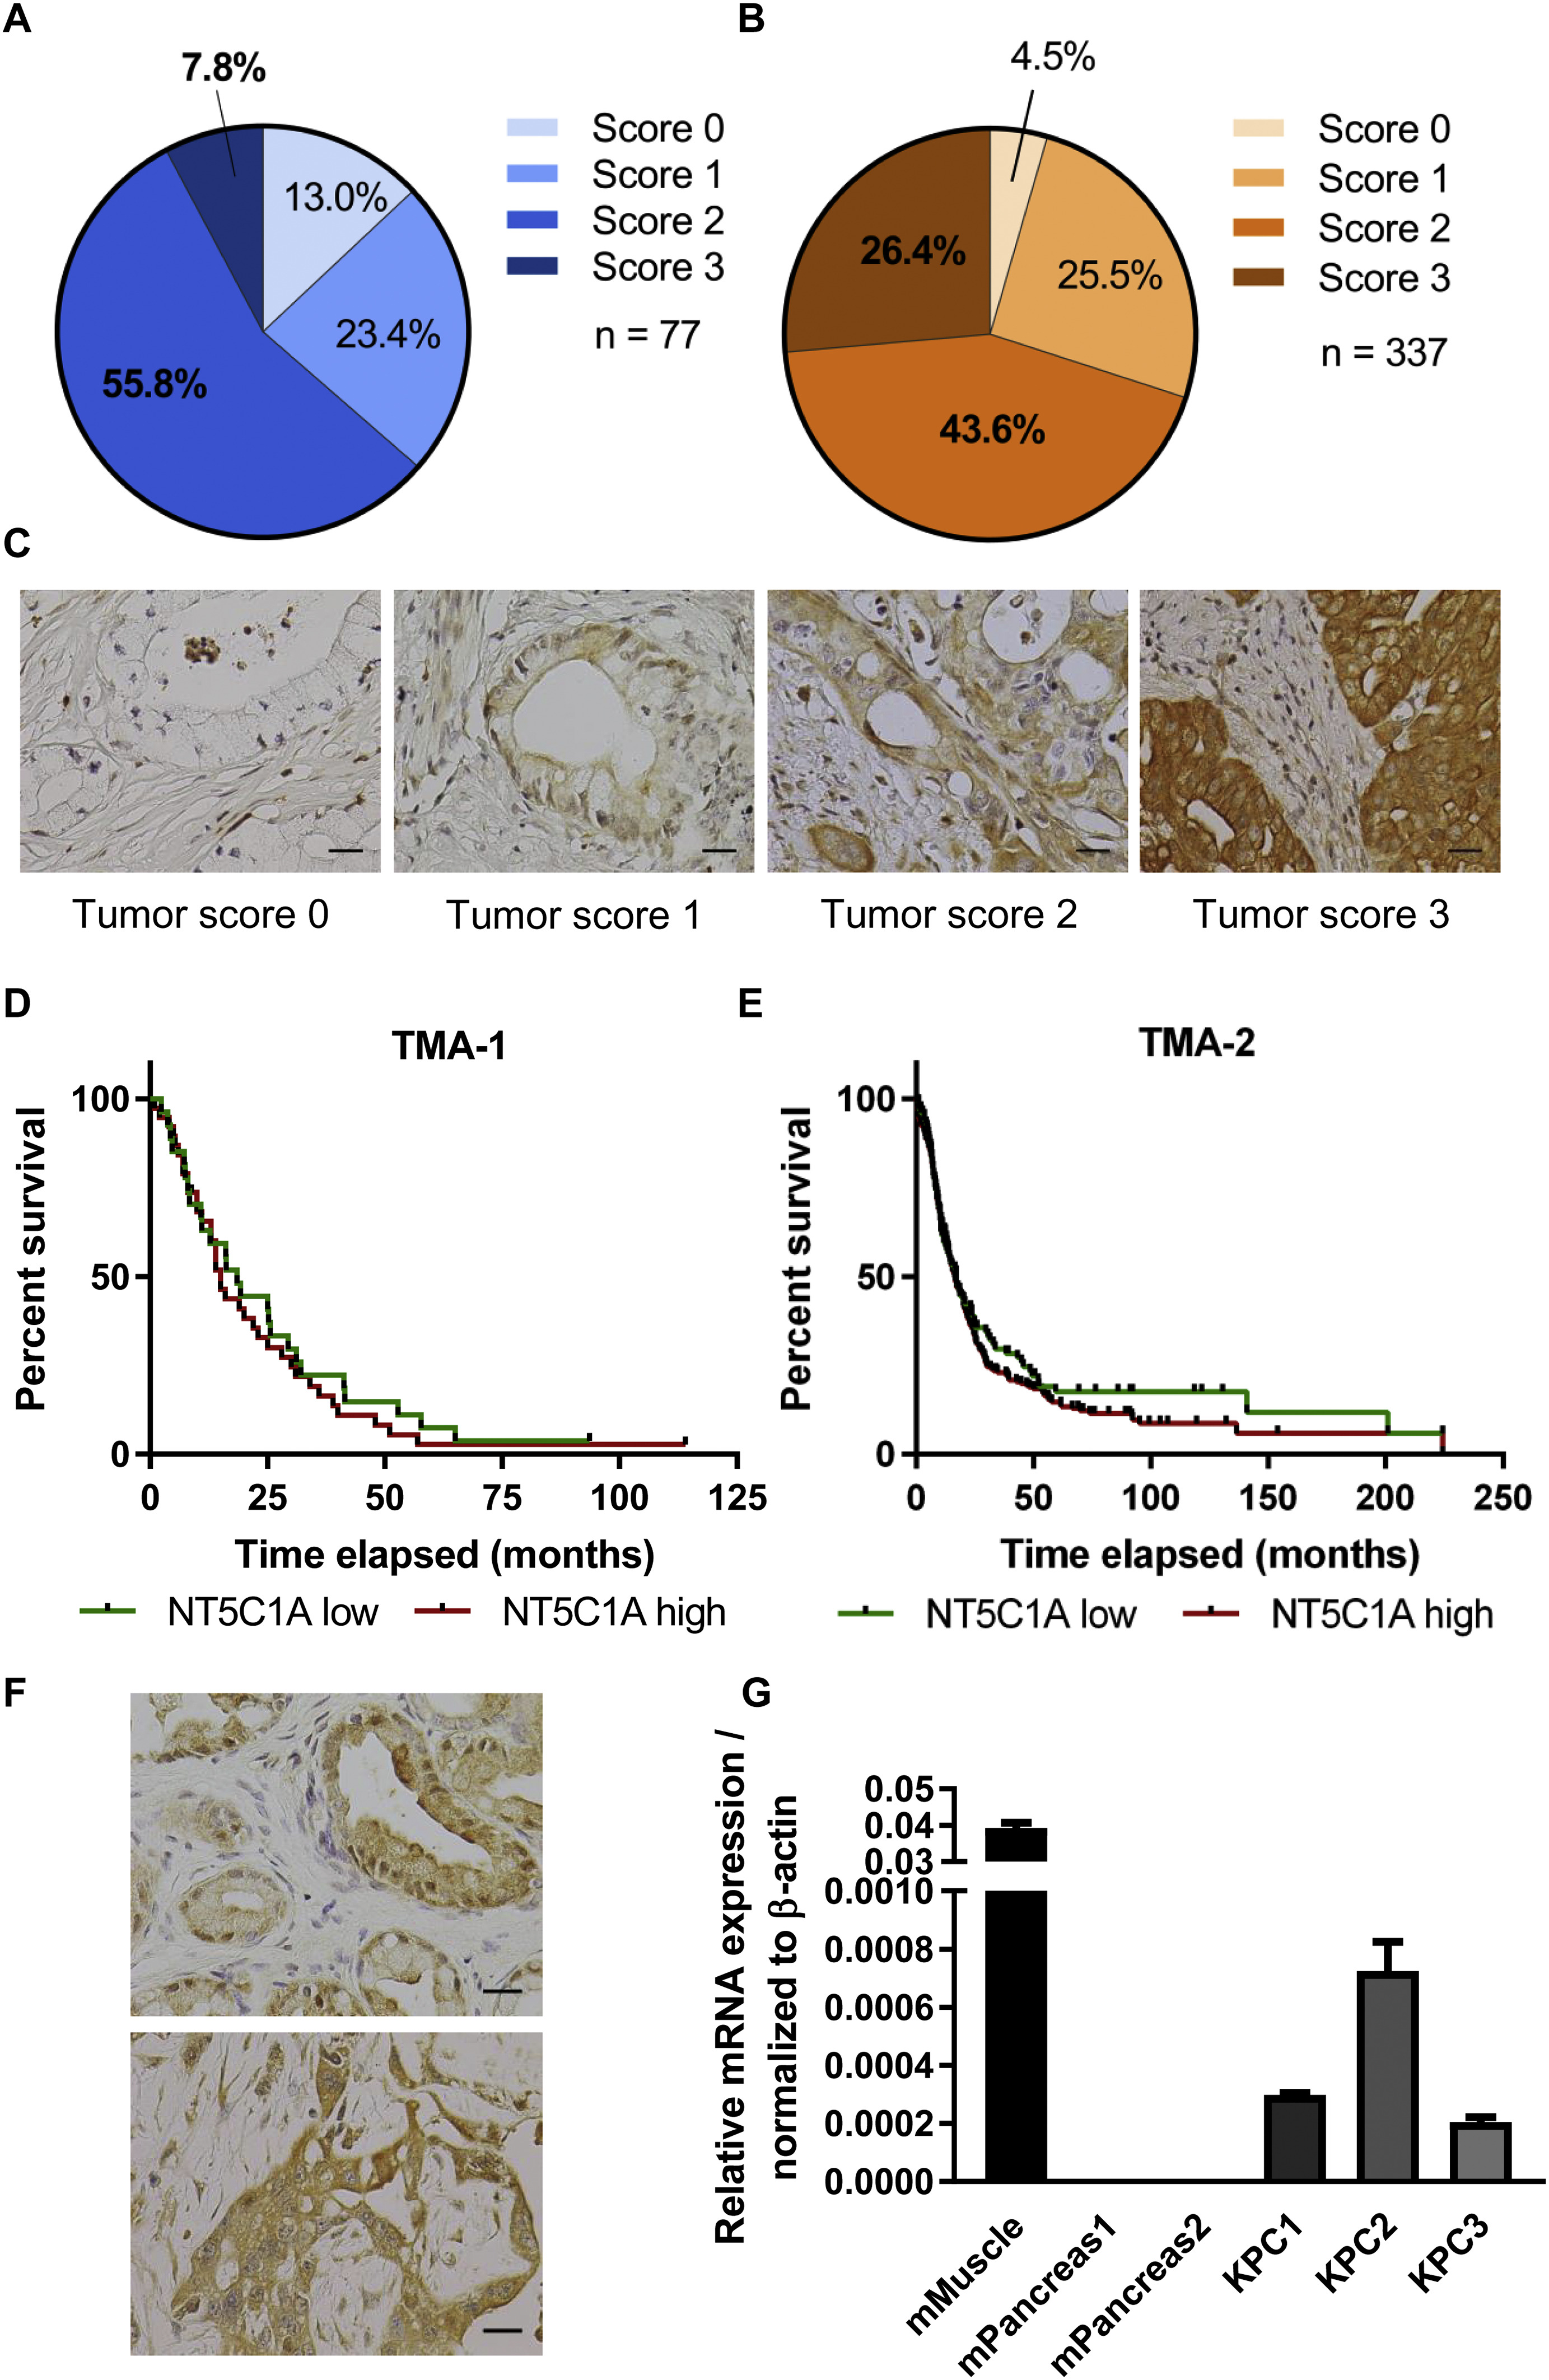 Cytosolic 5 Nucleotidase 1a Is Overexpressed In Pancreatic Cancer And Mediates Gemcitabine Resistance By Reducing Intracellular Gemcitabine Metabolites Ebiomedicine